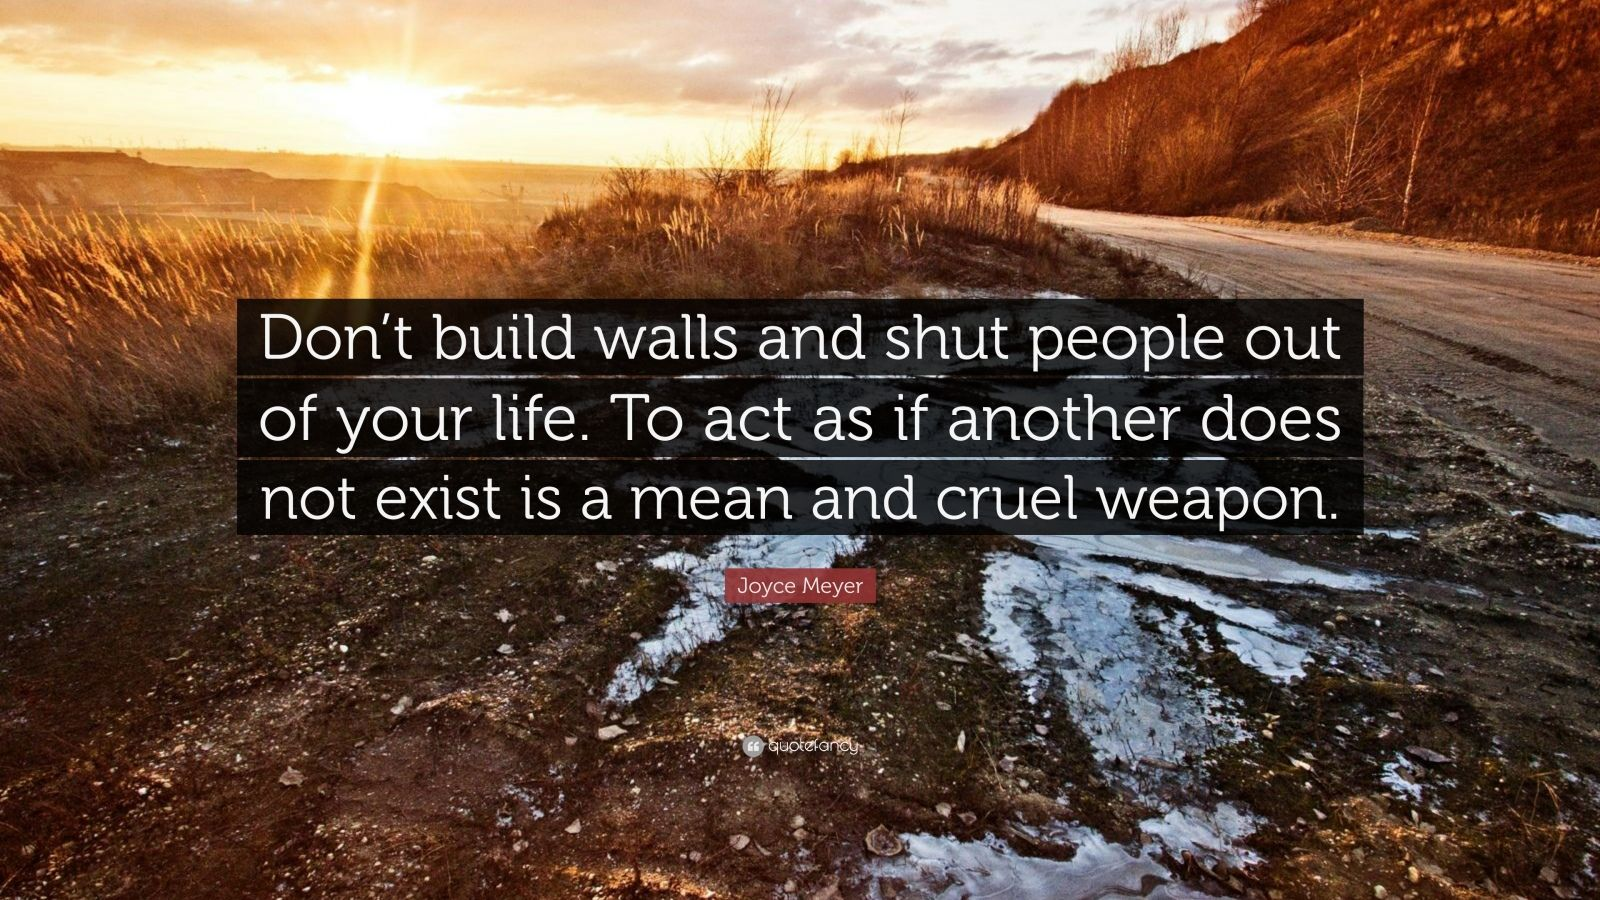 """Joyce Meyer Quote: """"Don't build walls and shut people out of your life. To act as if another does not exist is a mean and cruel weapon."""""""